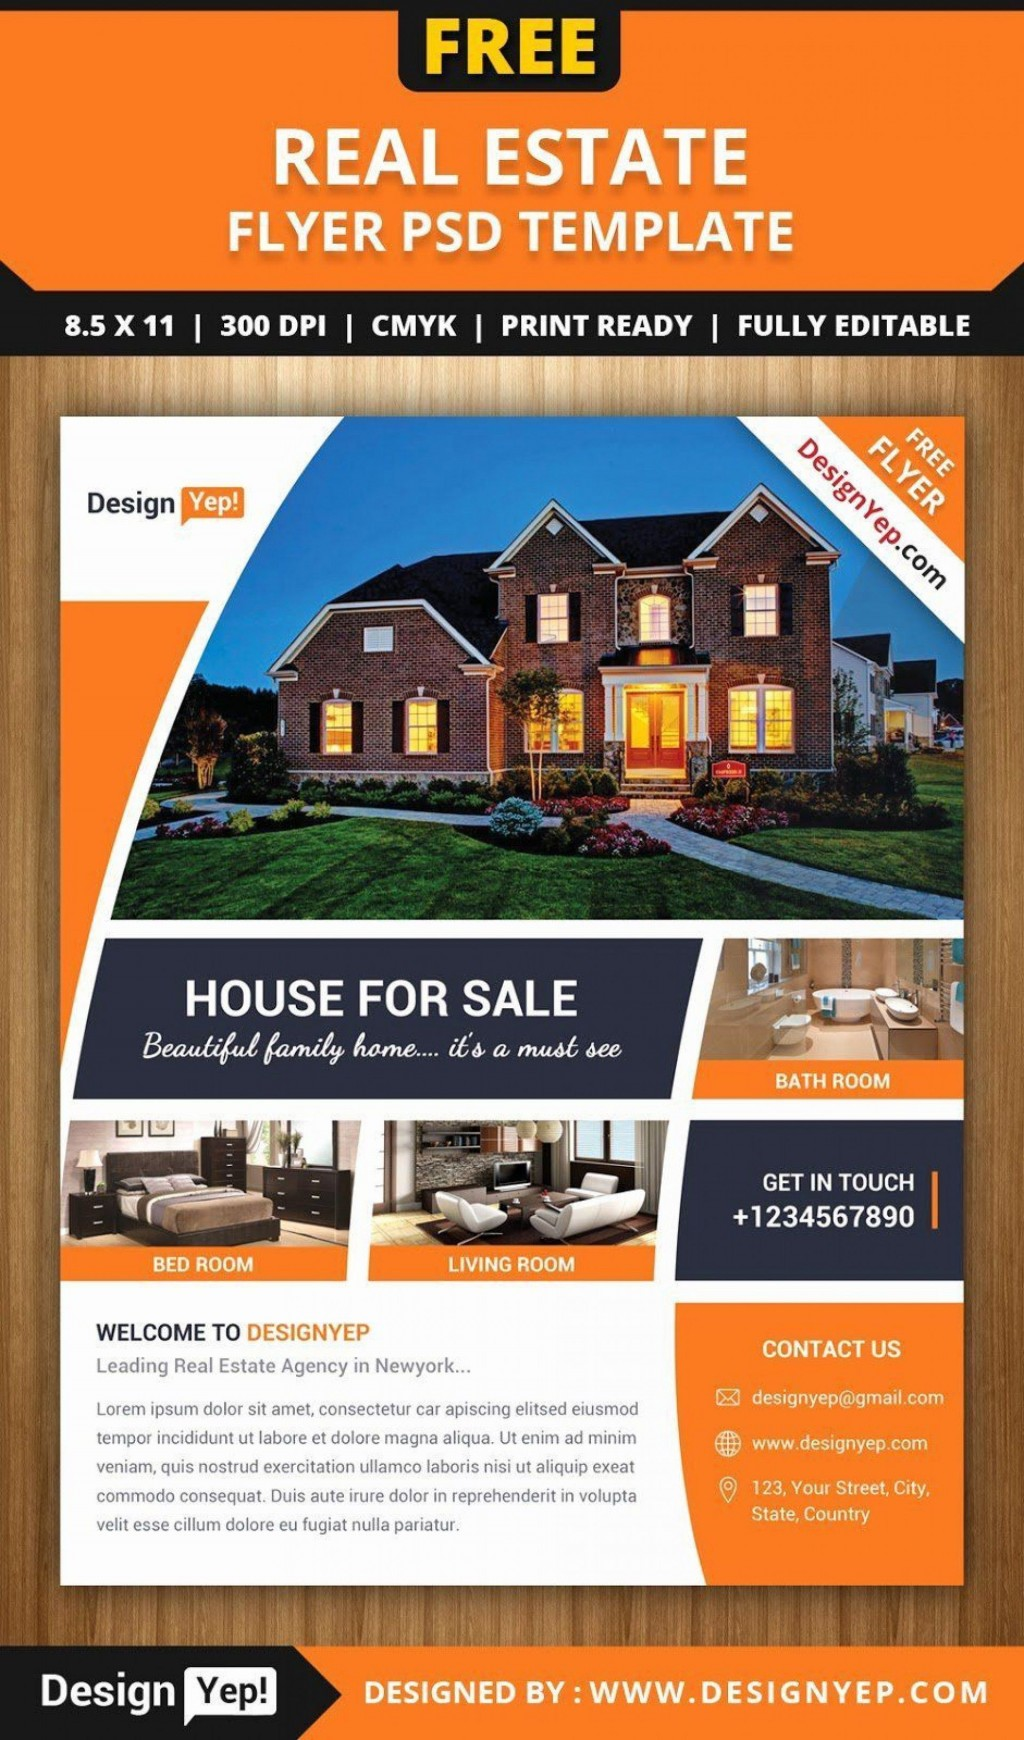 000 Sensational Real Estate Flyer Template Free Concept  Publisher Commercial Pdf DownloadLarge